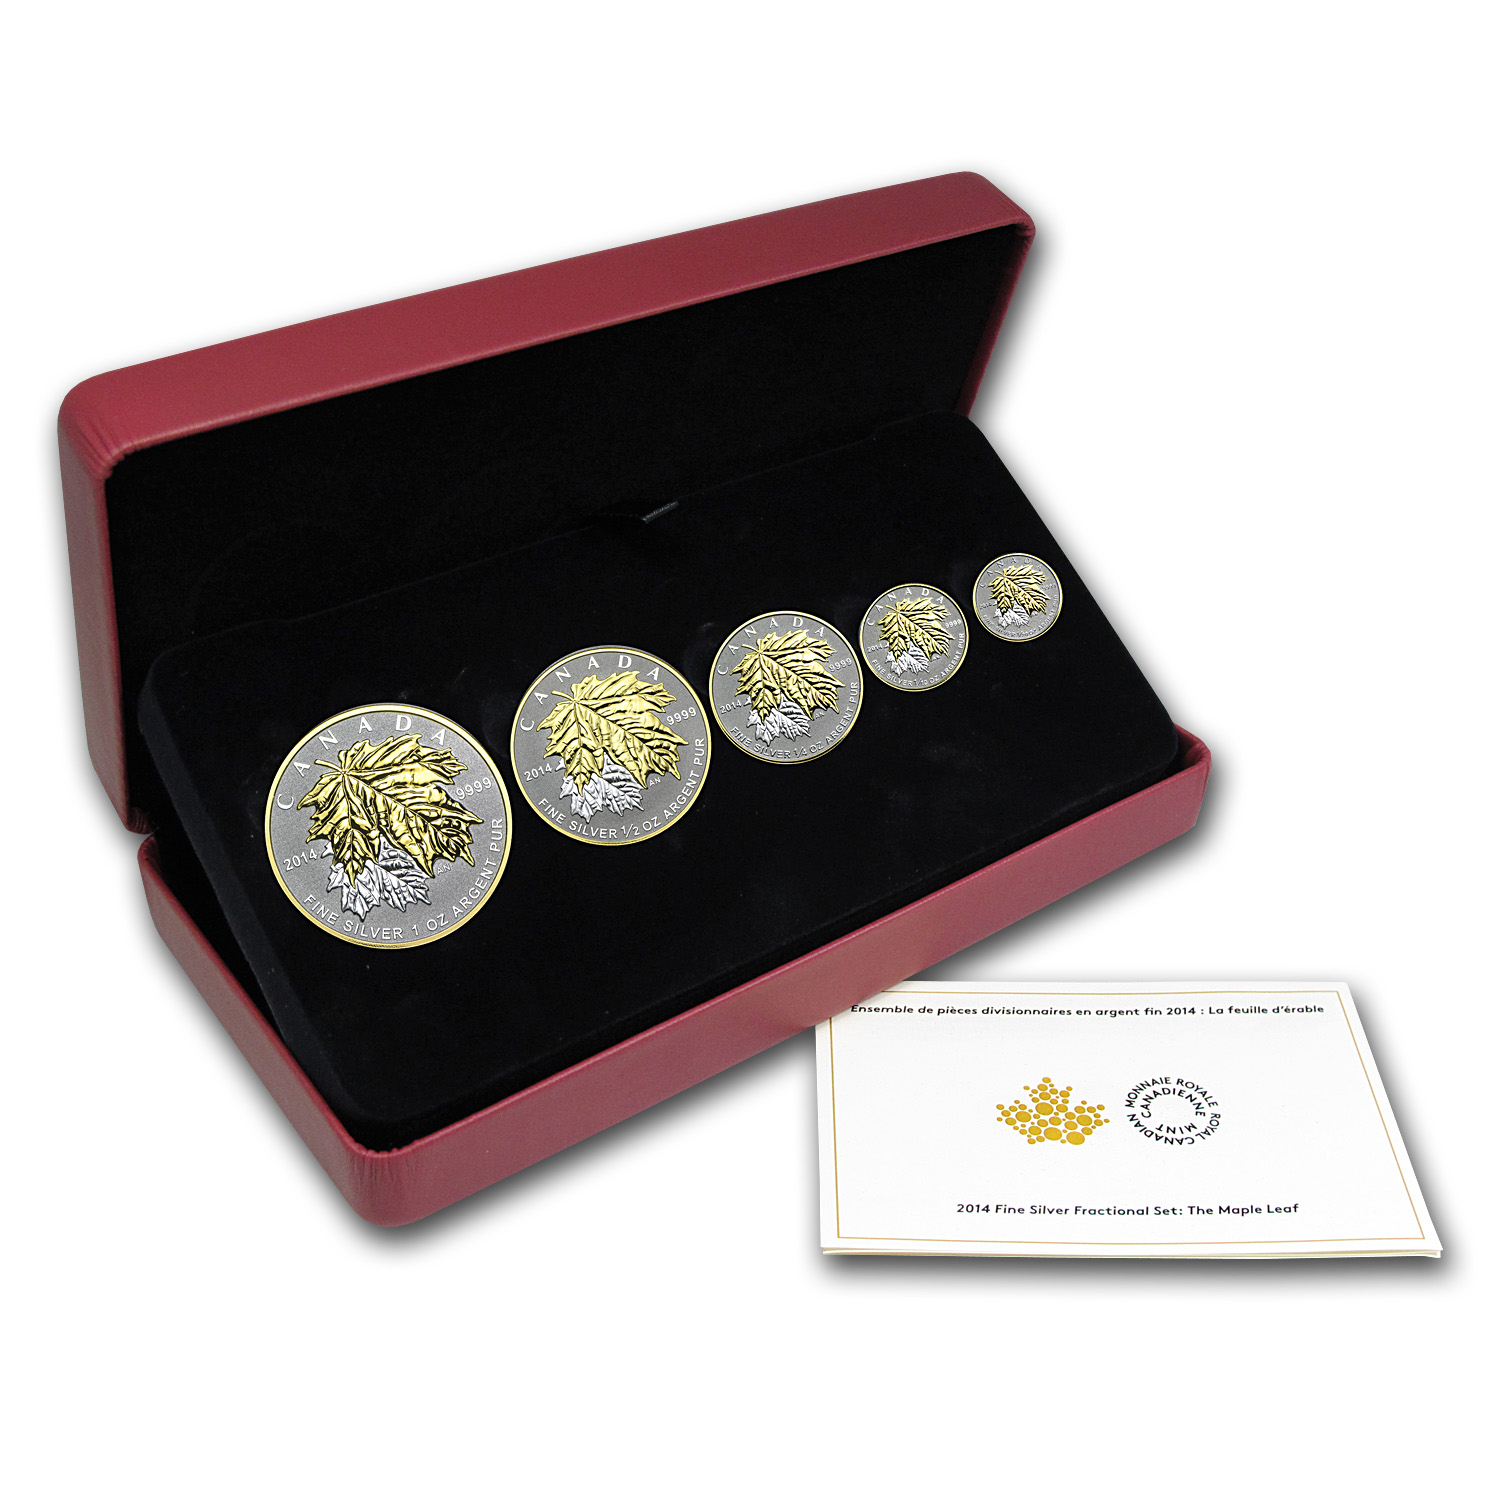 2014 Silver Canadian Fractional Set - Maple Leaf - 5 Coin Set